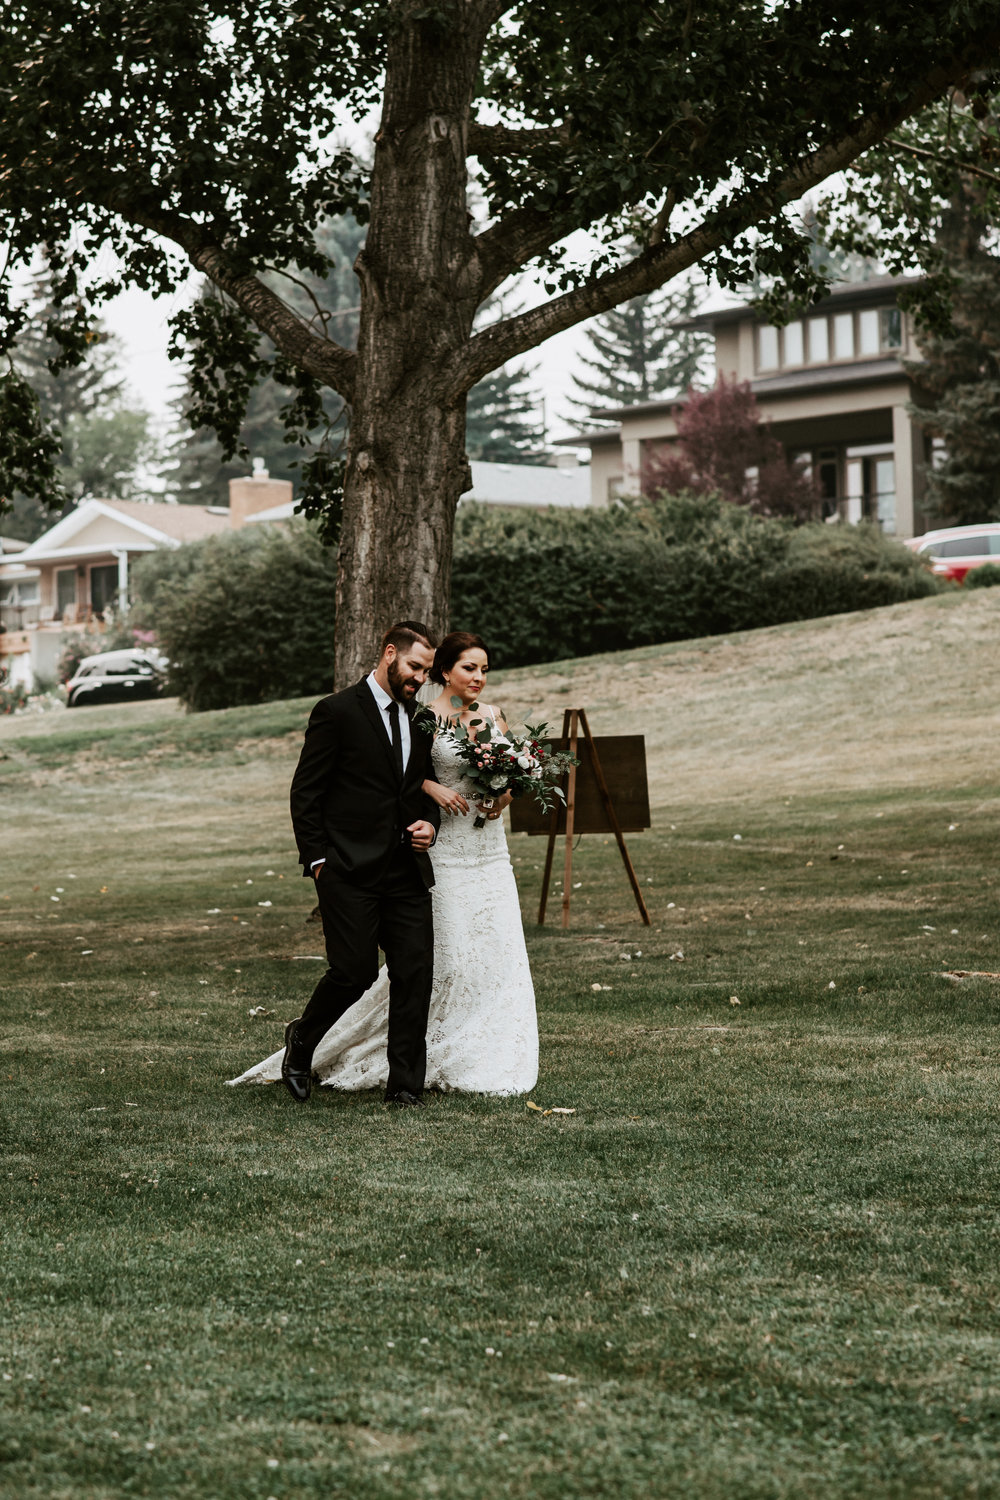 Calgary Wedding Photographer - 20 of 84.jpg